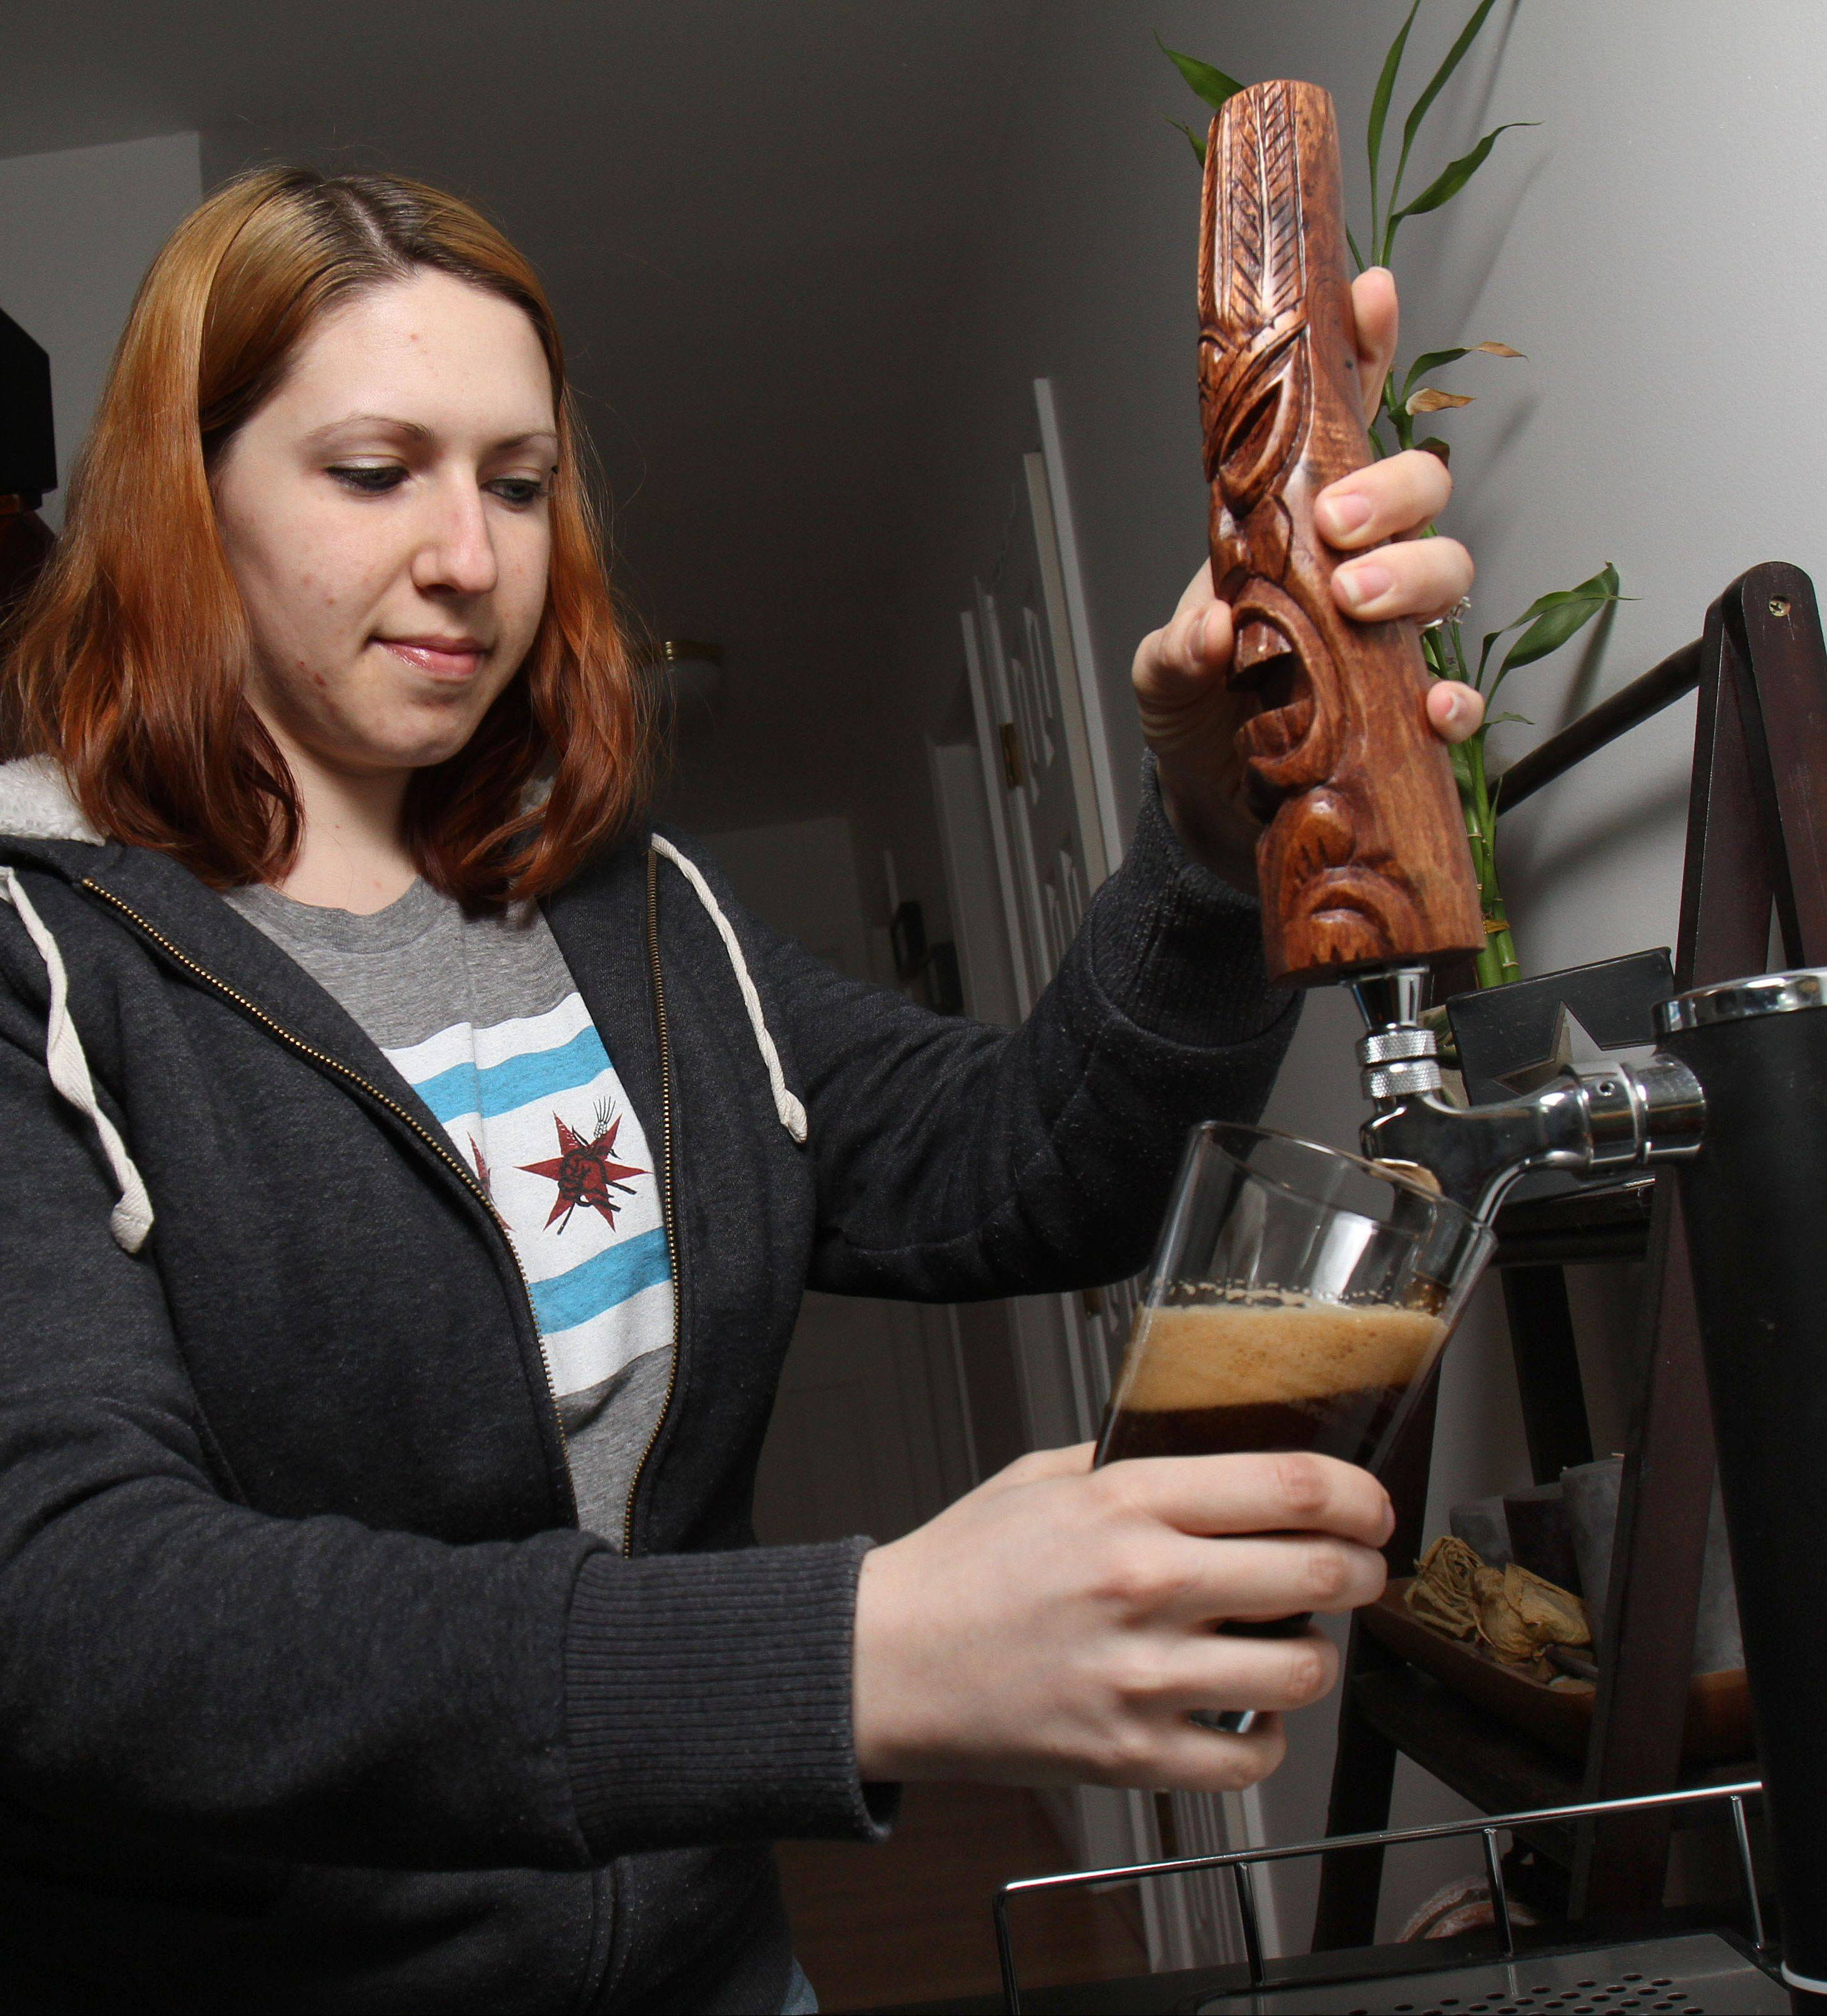 Valerie Delligatti of Round Lake Beach pours a pint of stout she brewed at home. Delligatti belongs to the Babble Home brewing Club of Lake County.